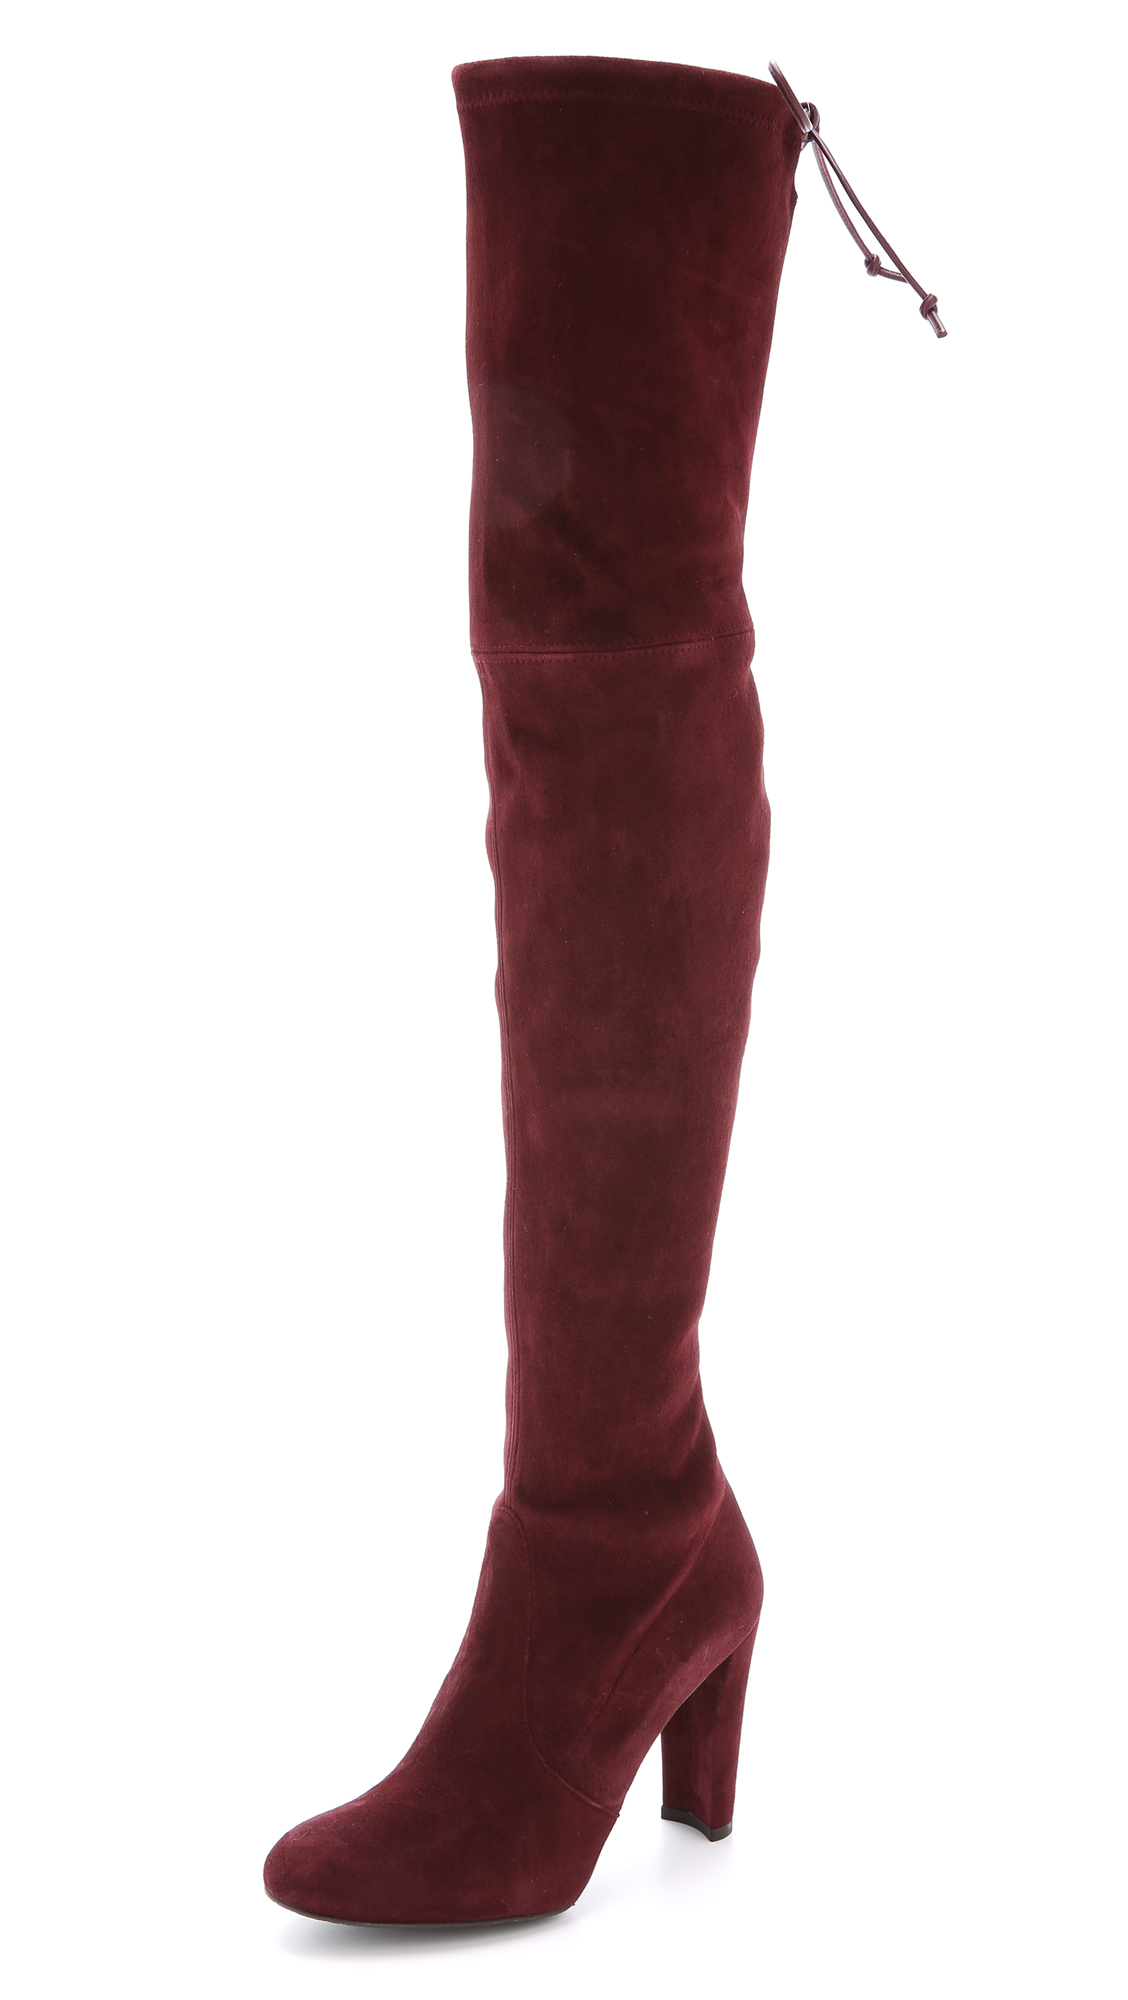 2a9bc211056 Stuart Weitzman Highland Over The Knee Boots - Topo in Purple - Lyst